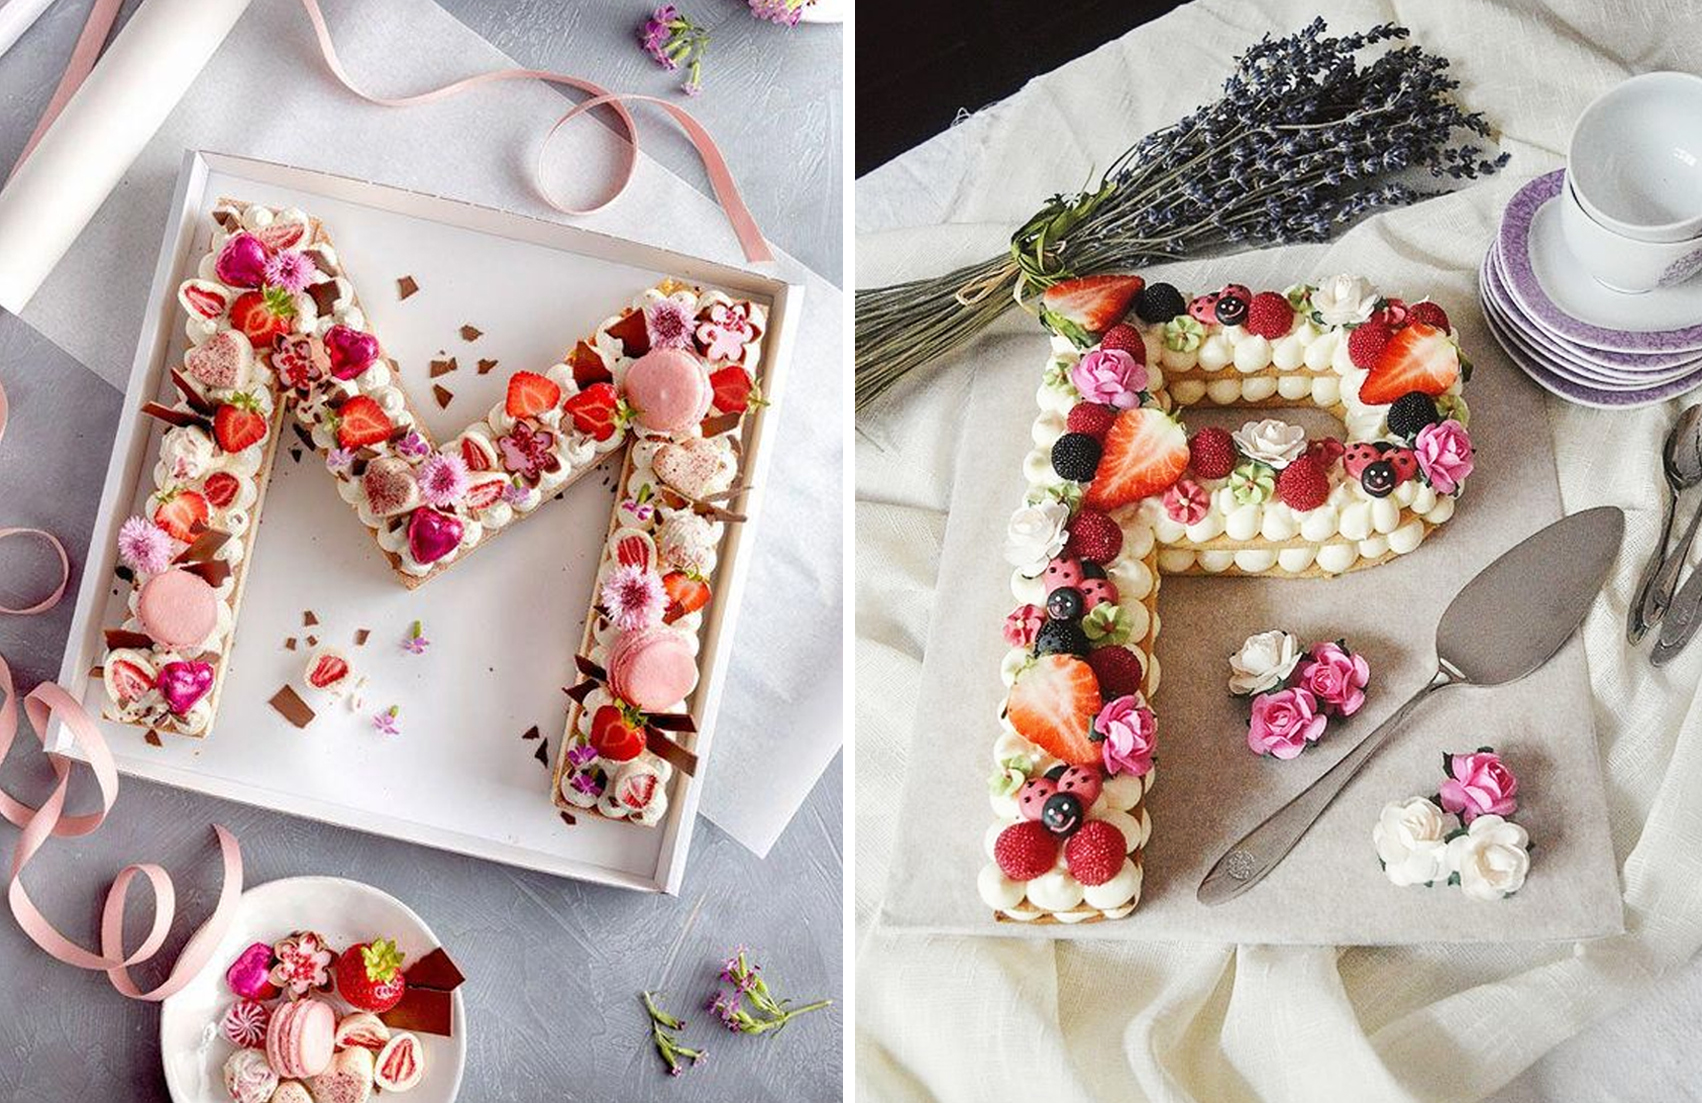 Letter cakes